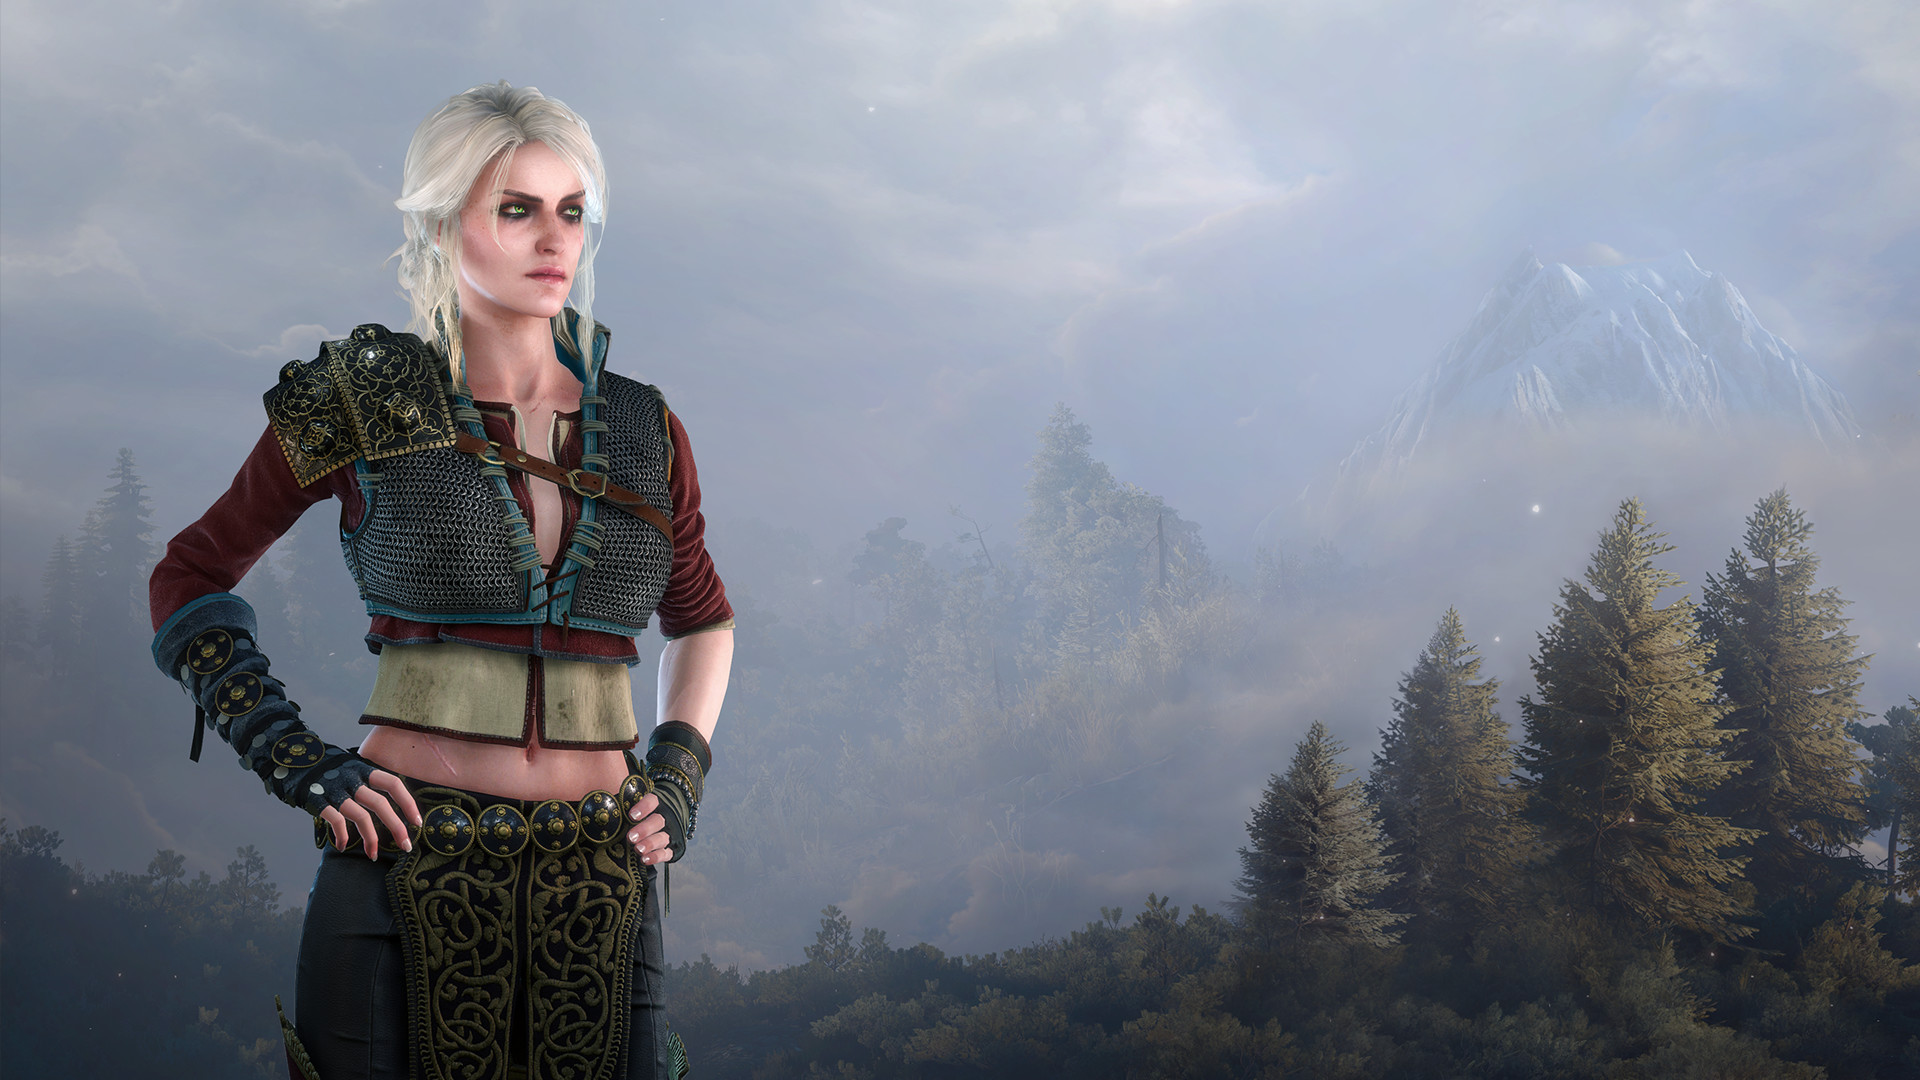 Alternative look for Ciri | Witcher Wiki | FANDOM powered by